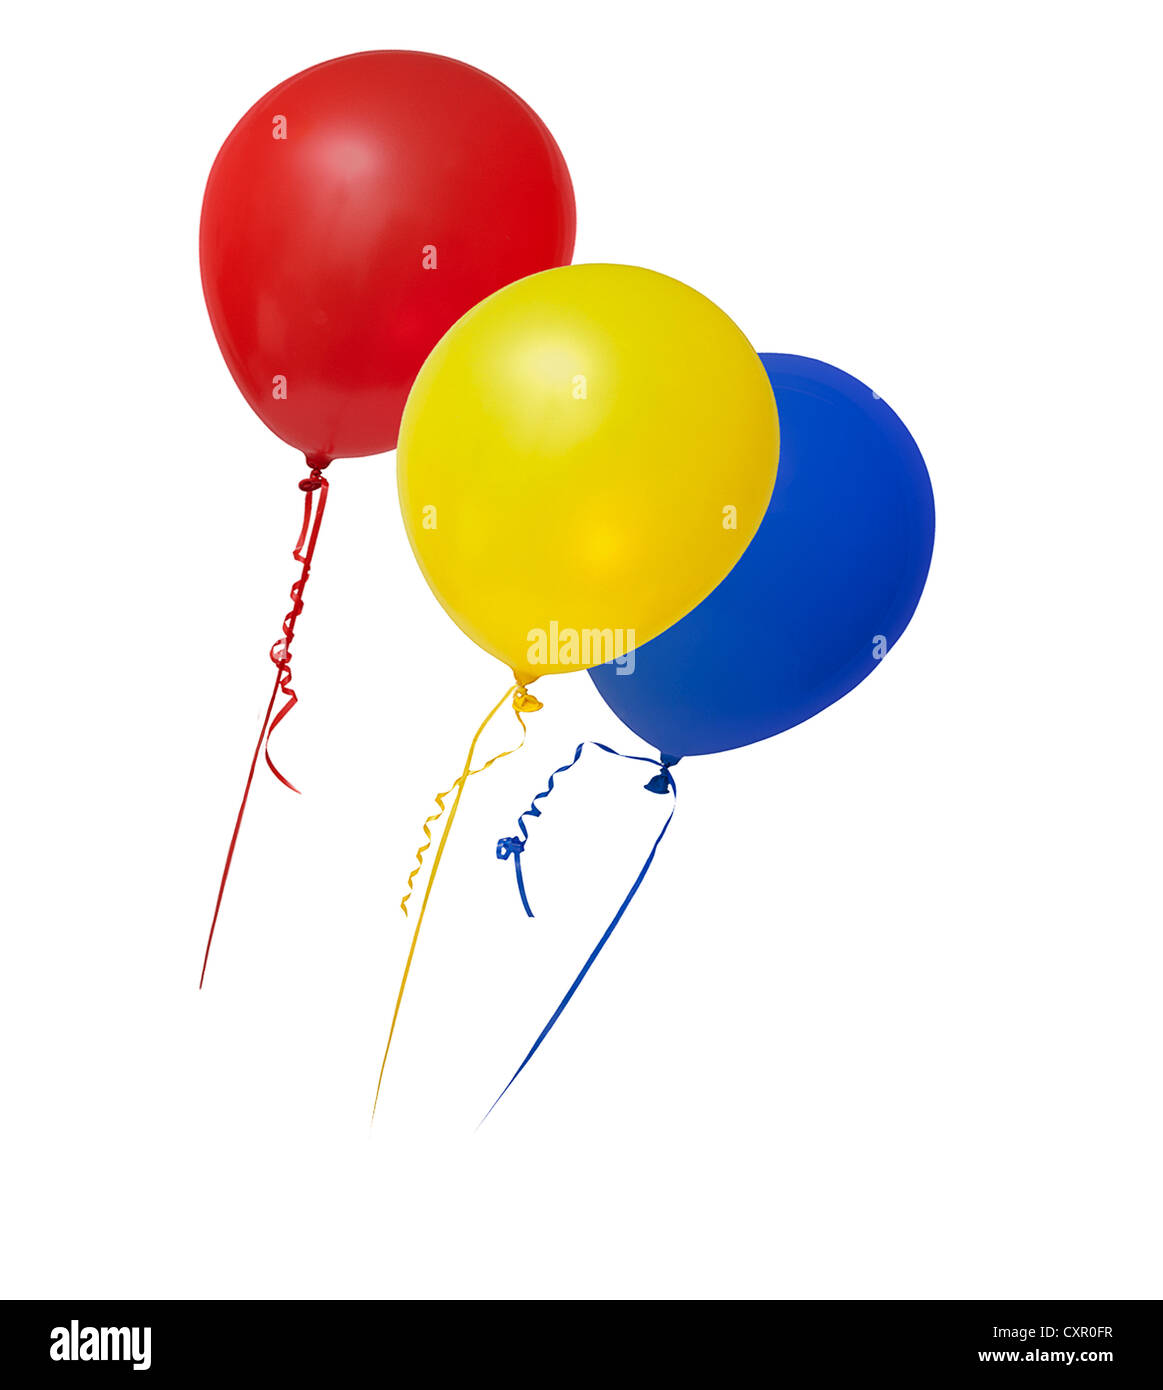 Balloons in primary colours - Stock Image